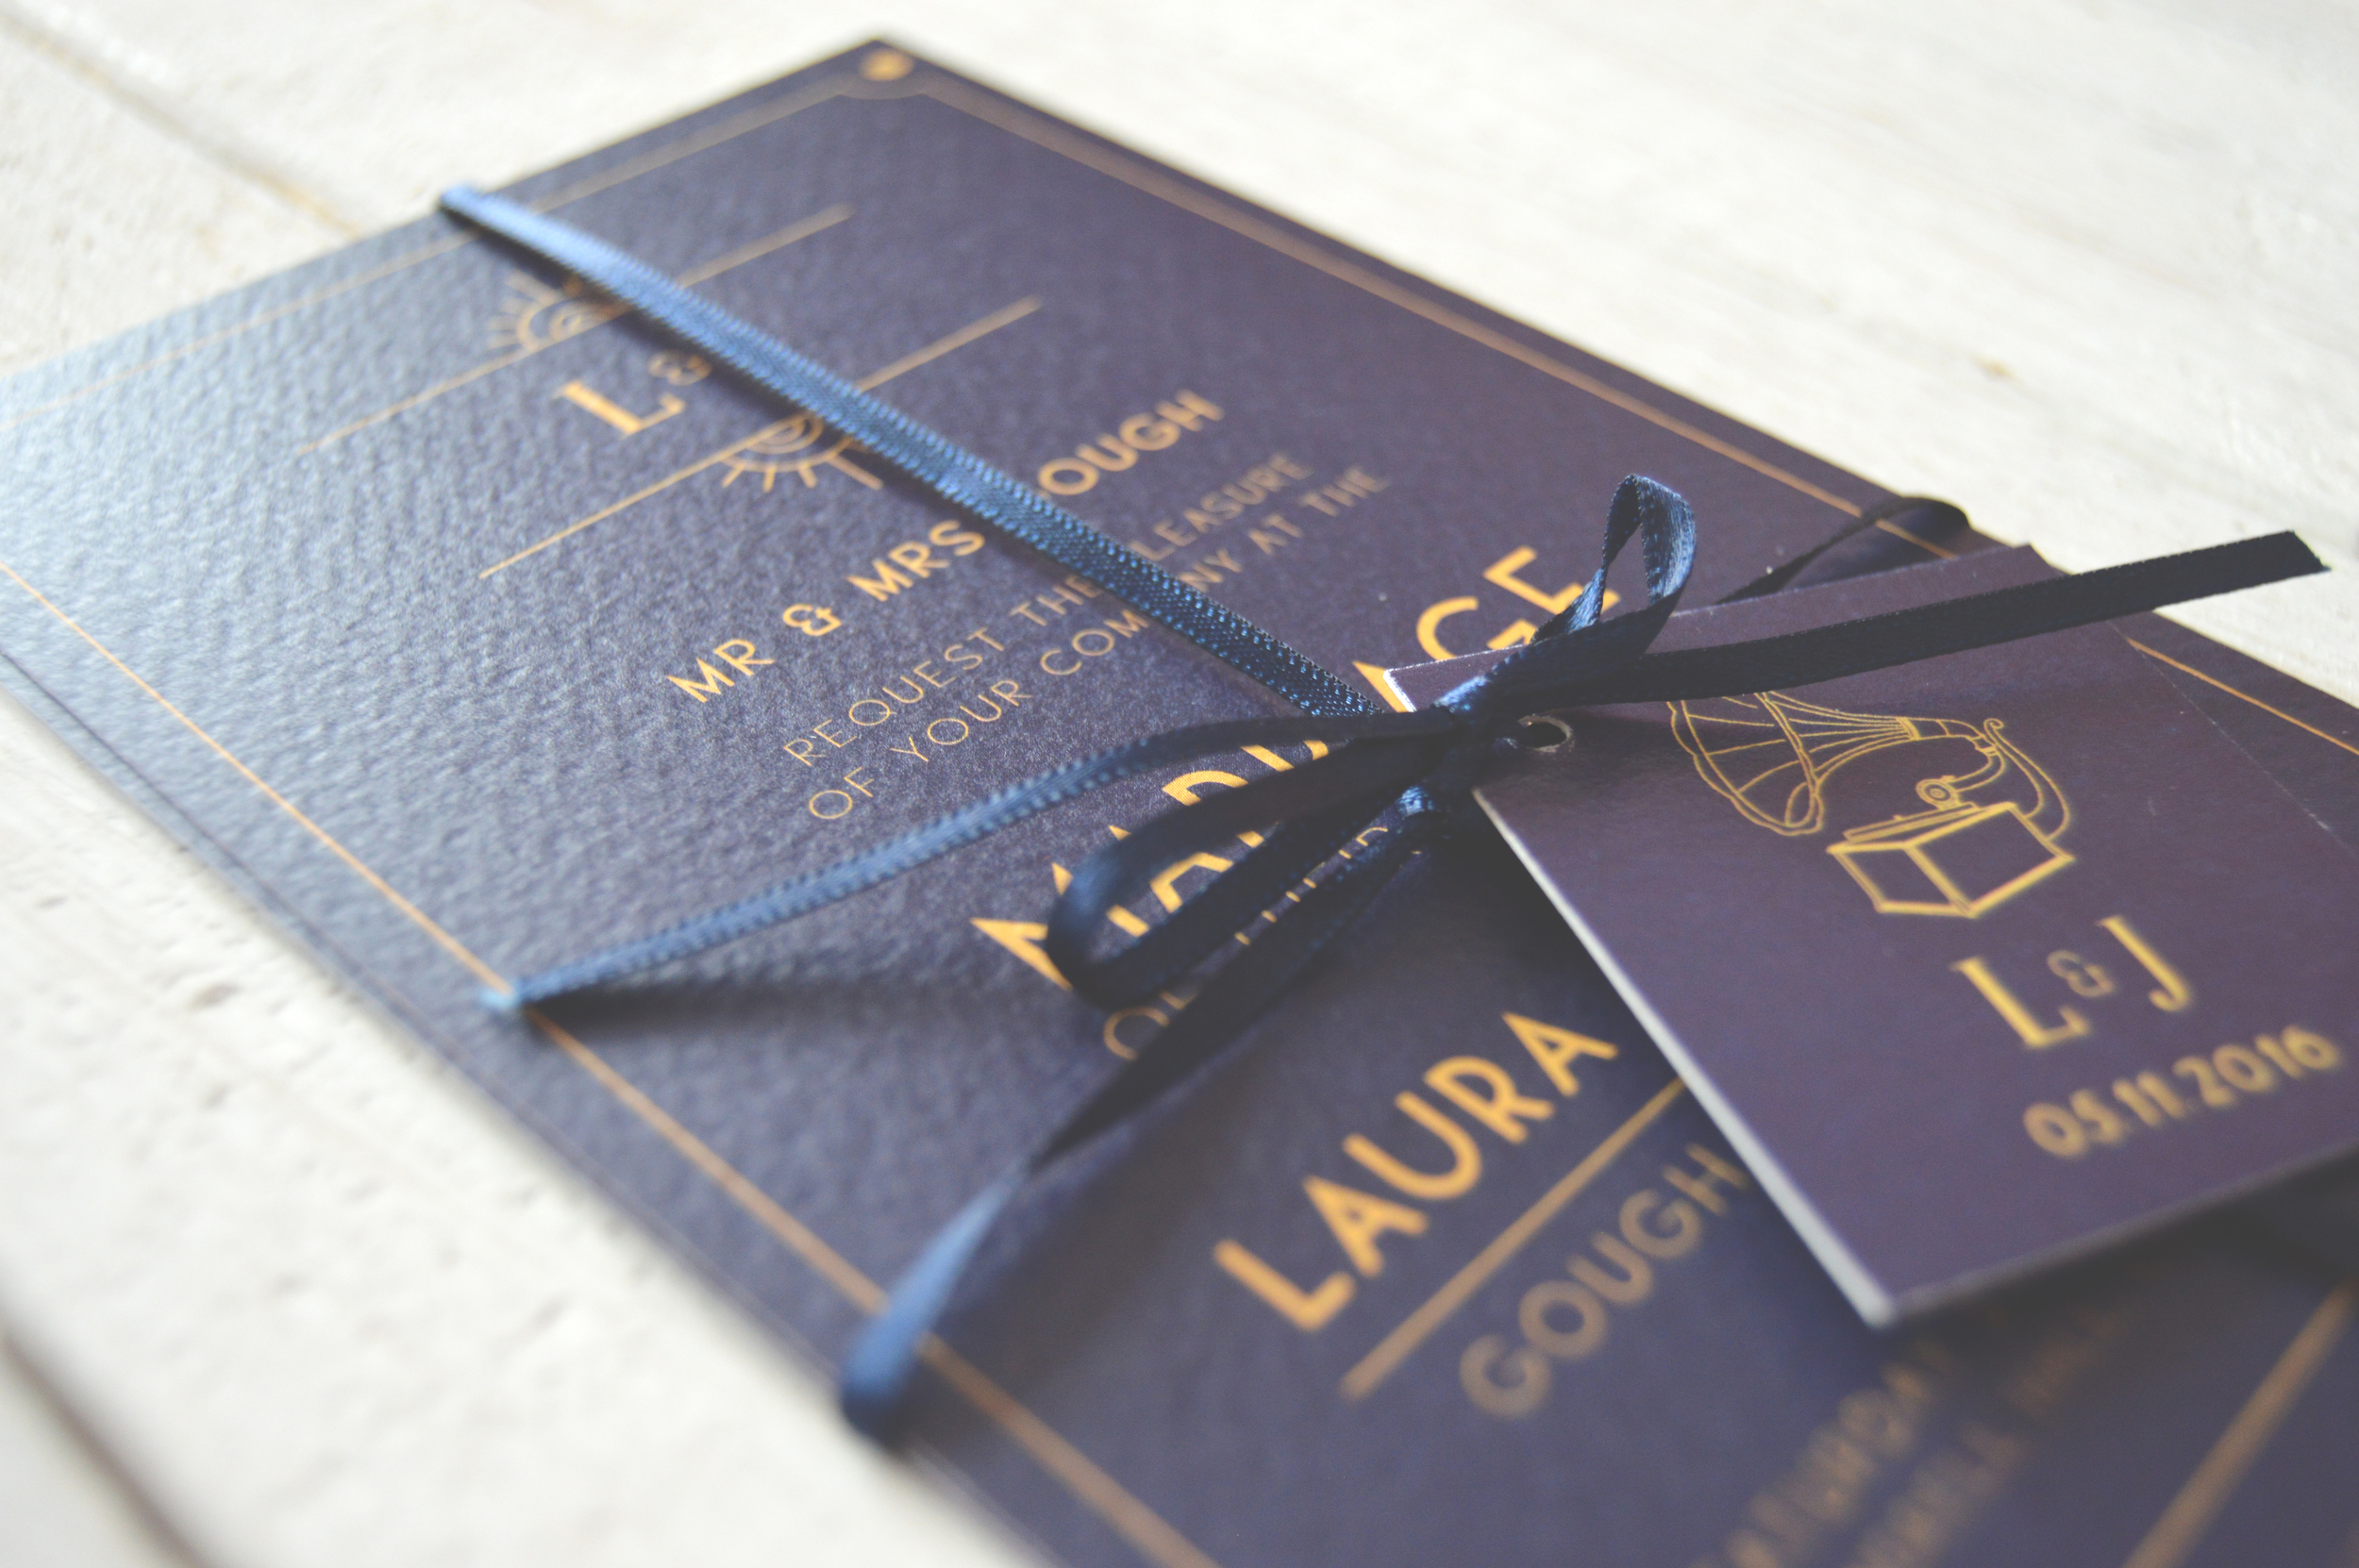 Bespoke wedding stationery for Laura and James' Great Gatsby style wedding